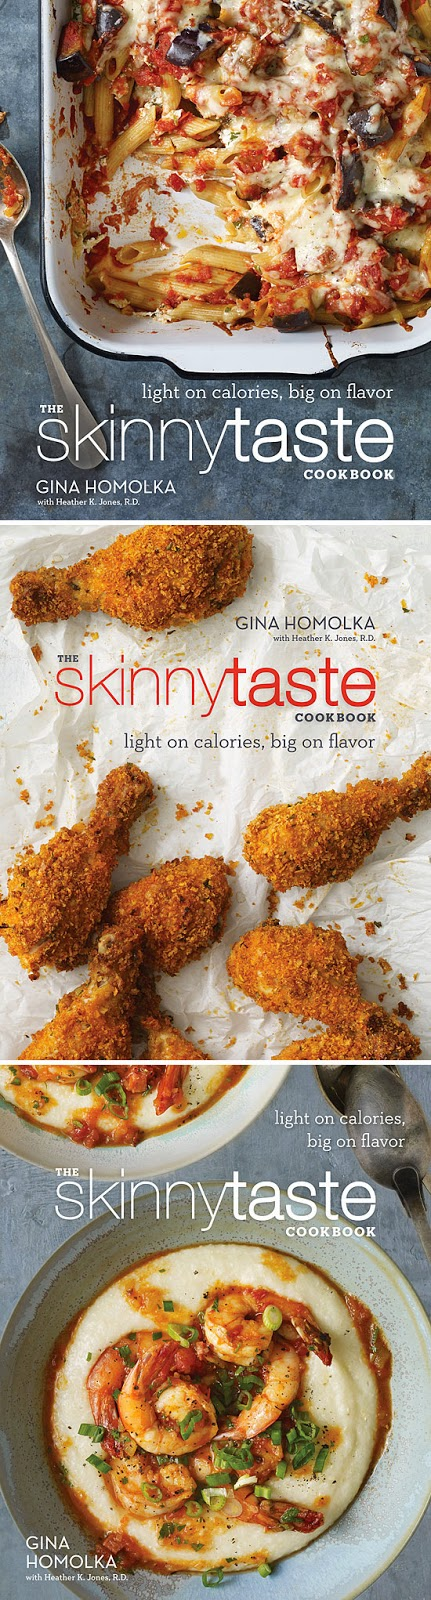 The Skinnytaste Cookbook Cover Designs